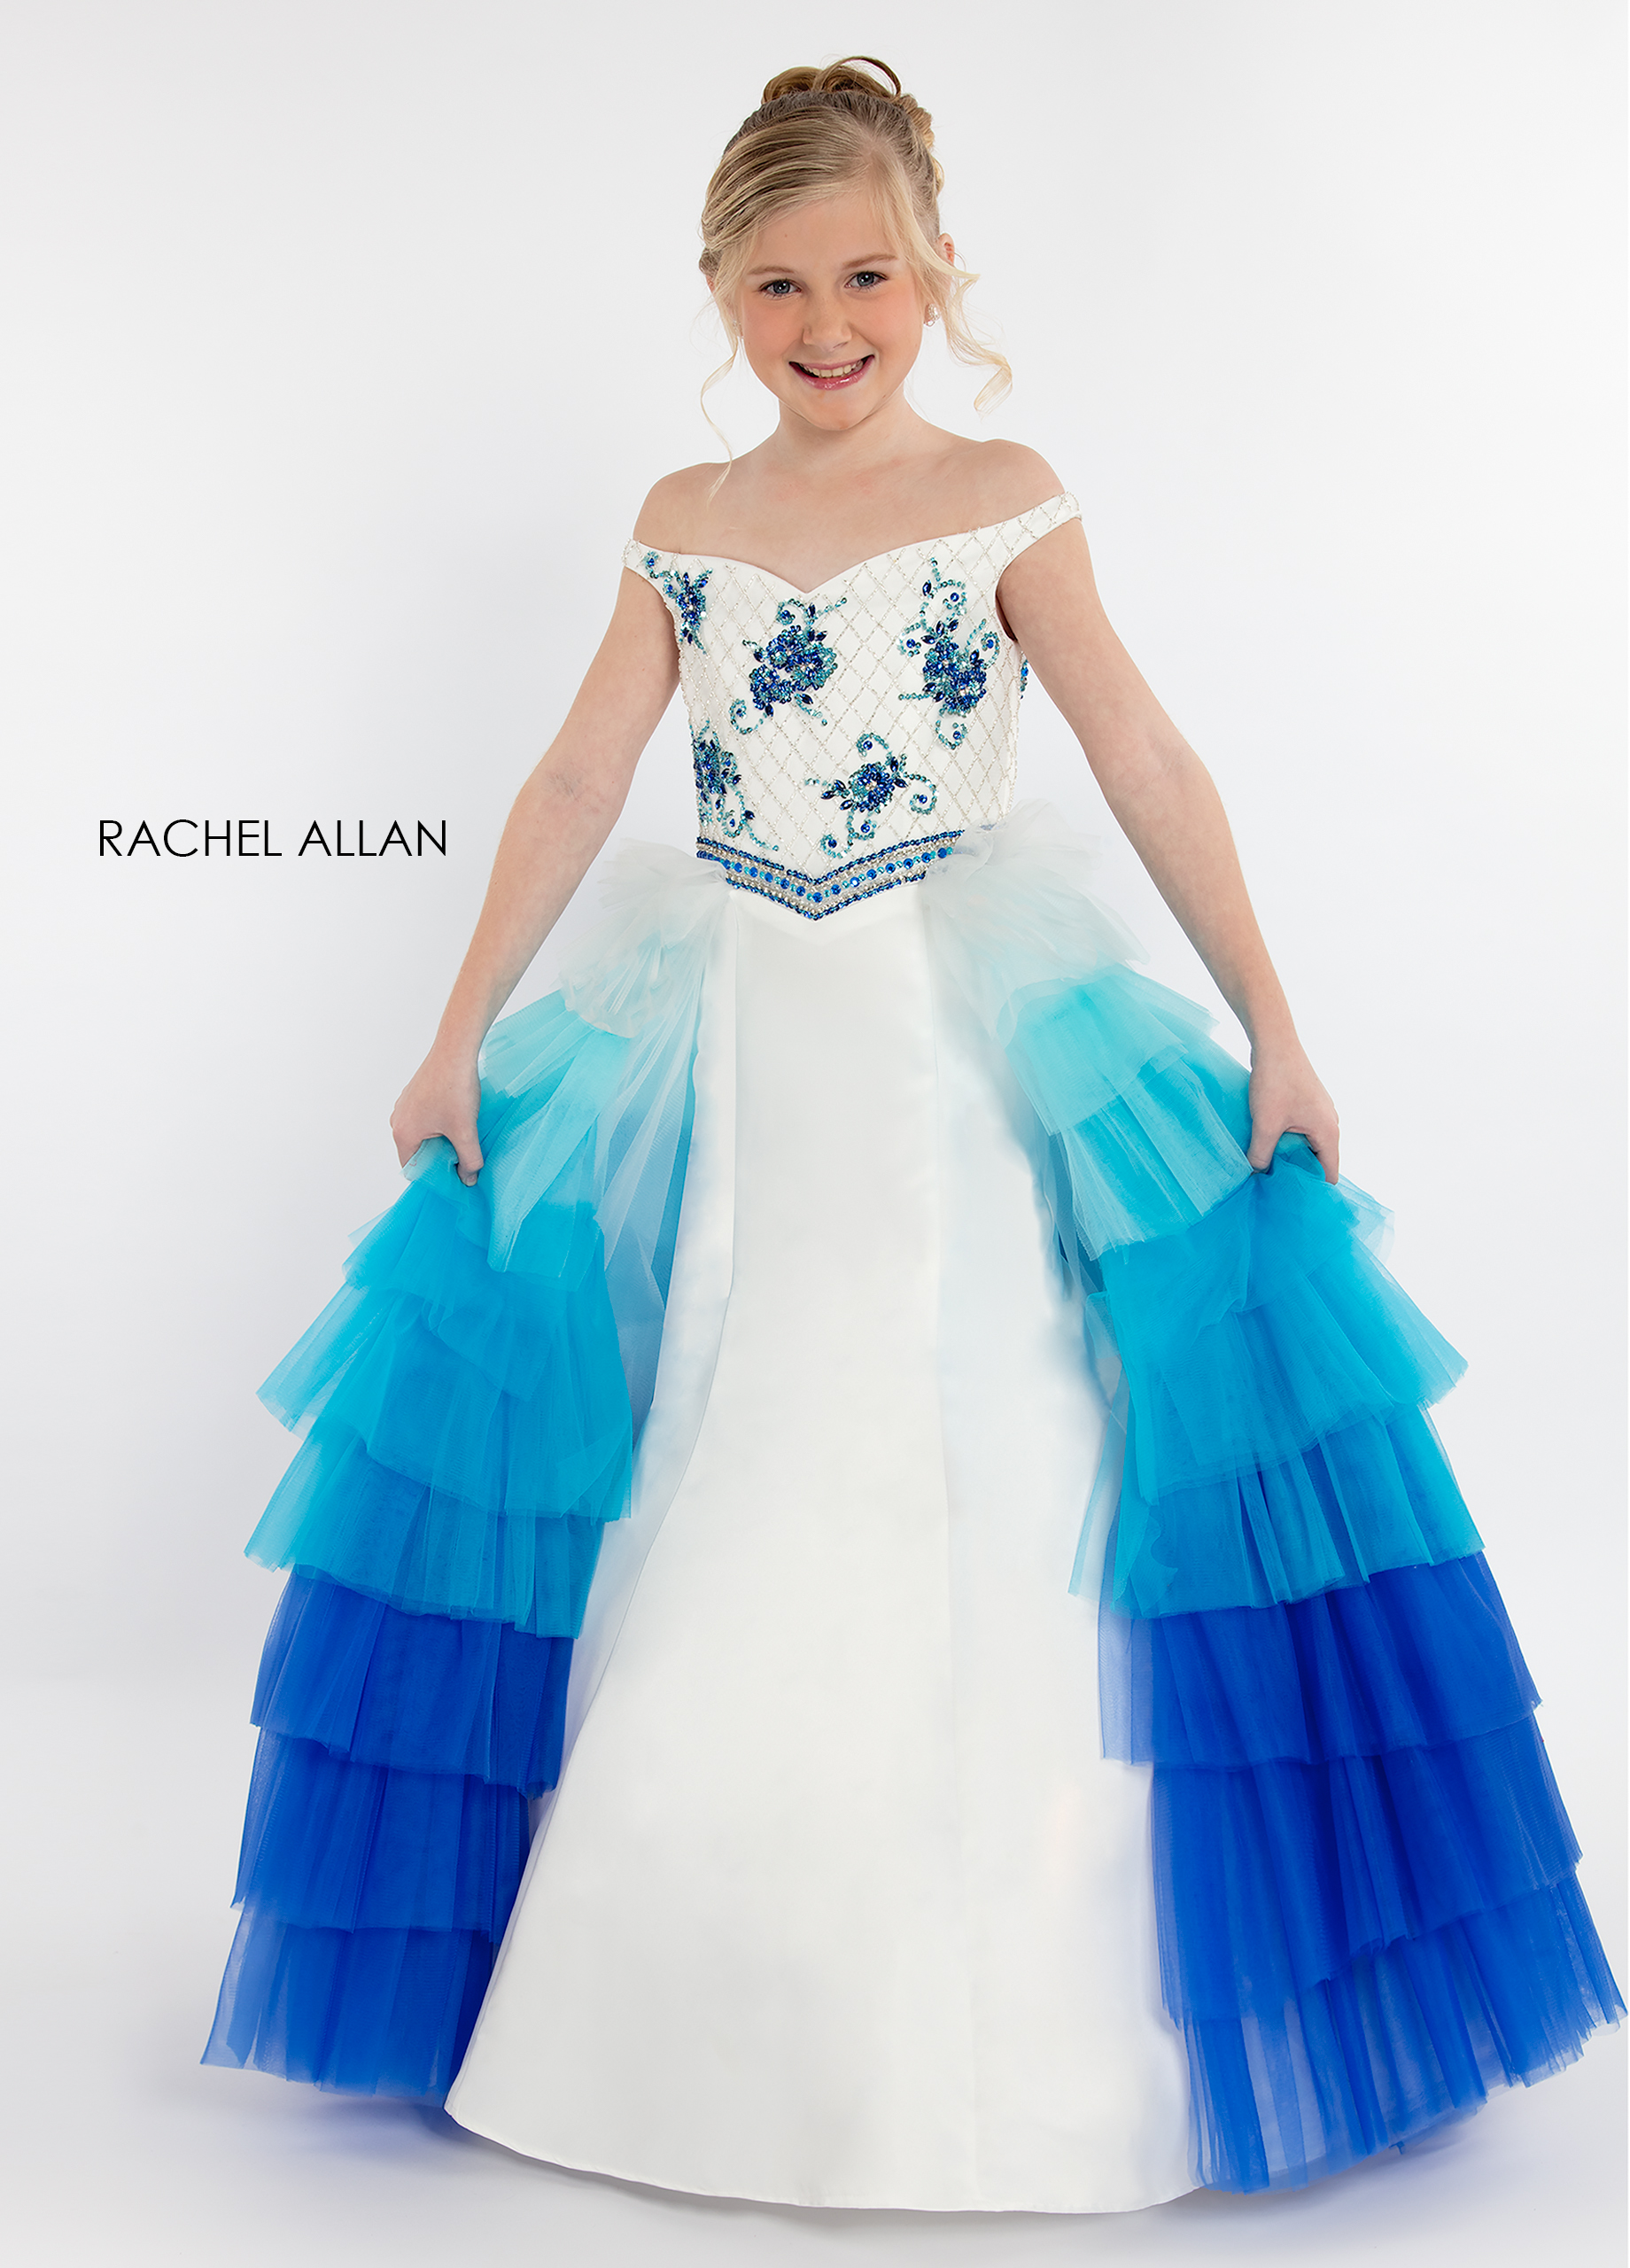 Off The Shoulder Skirt With Overlay Little Girl Pageant Dresses in Turquoise Color